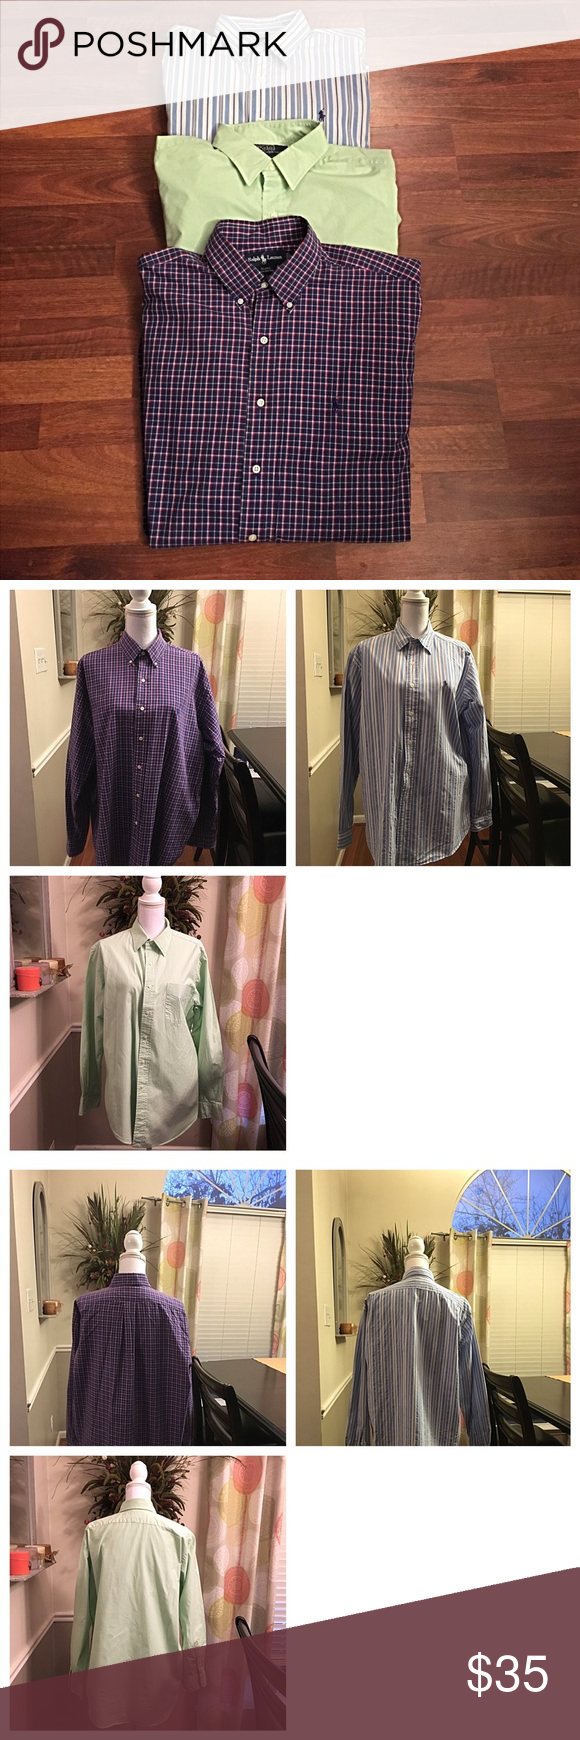 Ralph Lauren 3 pack bundle deal Ralph Lauren 3 pack bundle deal!!! All 3 shirts are in brand-new condition.  Hardly worn at all. shirts have never been dried. No holes stains or tears!!! Excellent shirts. Don't miss out of this great deal!!!👍🏻💋 Ralph Lauren Shirts Dress Shirts